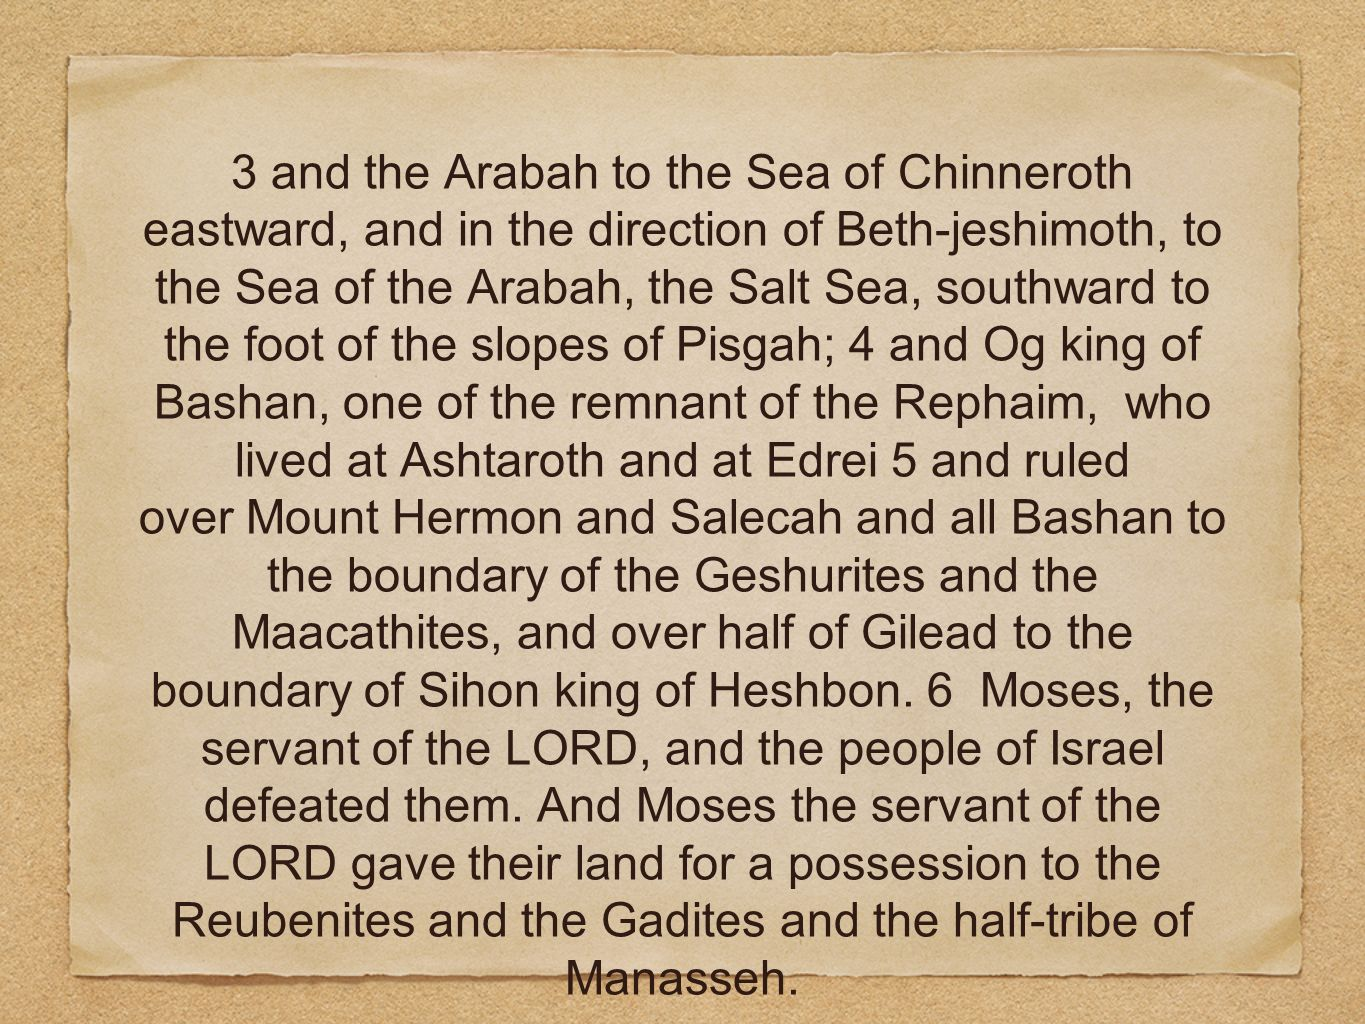 3 and the Arabah to the Sea of Chinneroth eastward, and in the direction of Beth-jeshimoth, to the Sea of the Arabah, the Salt Sea, southward to the f